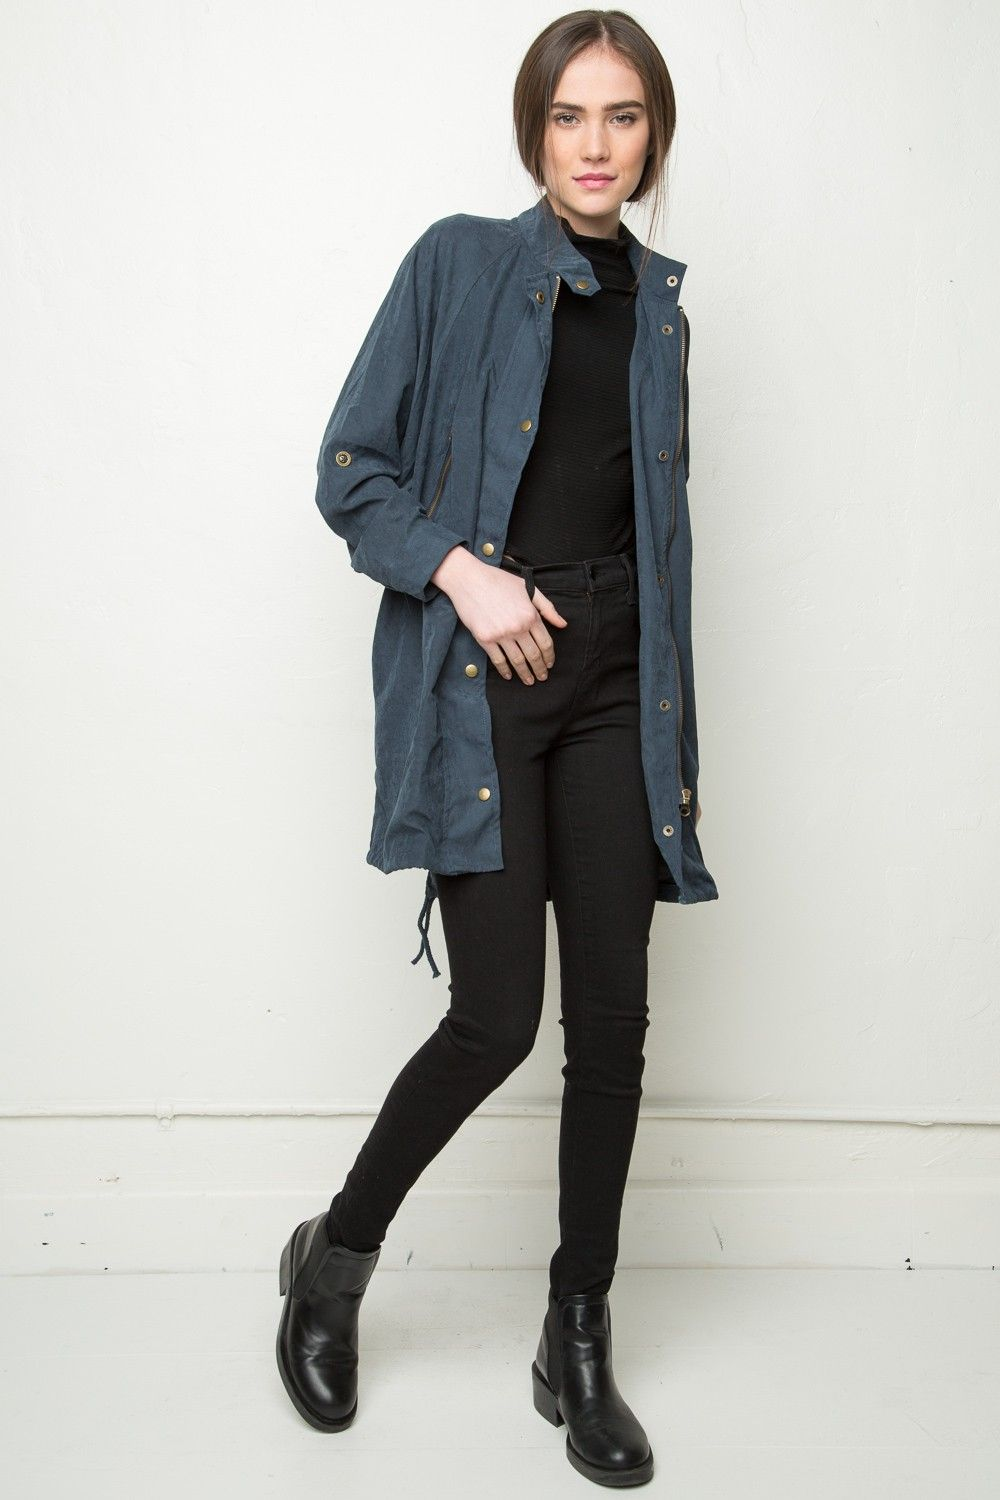 Janie Jacket Clothing Clothes Outerwear Jackets Jacket Outfits [ 1500 x 1000 Pixel ]